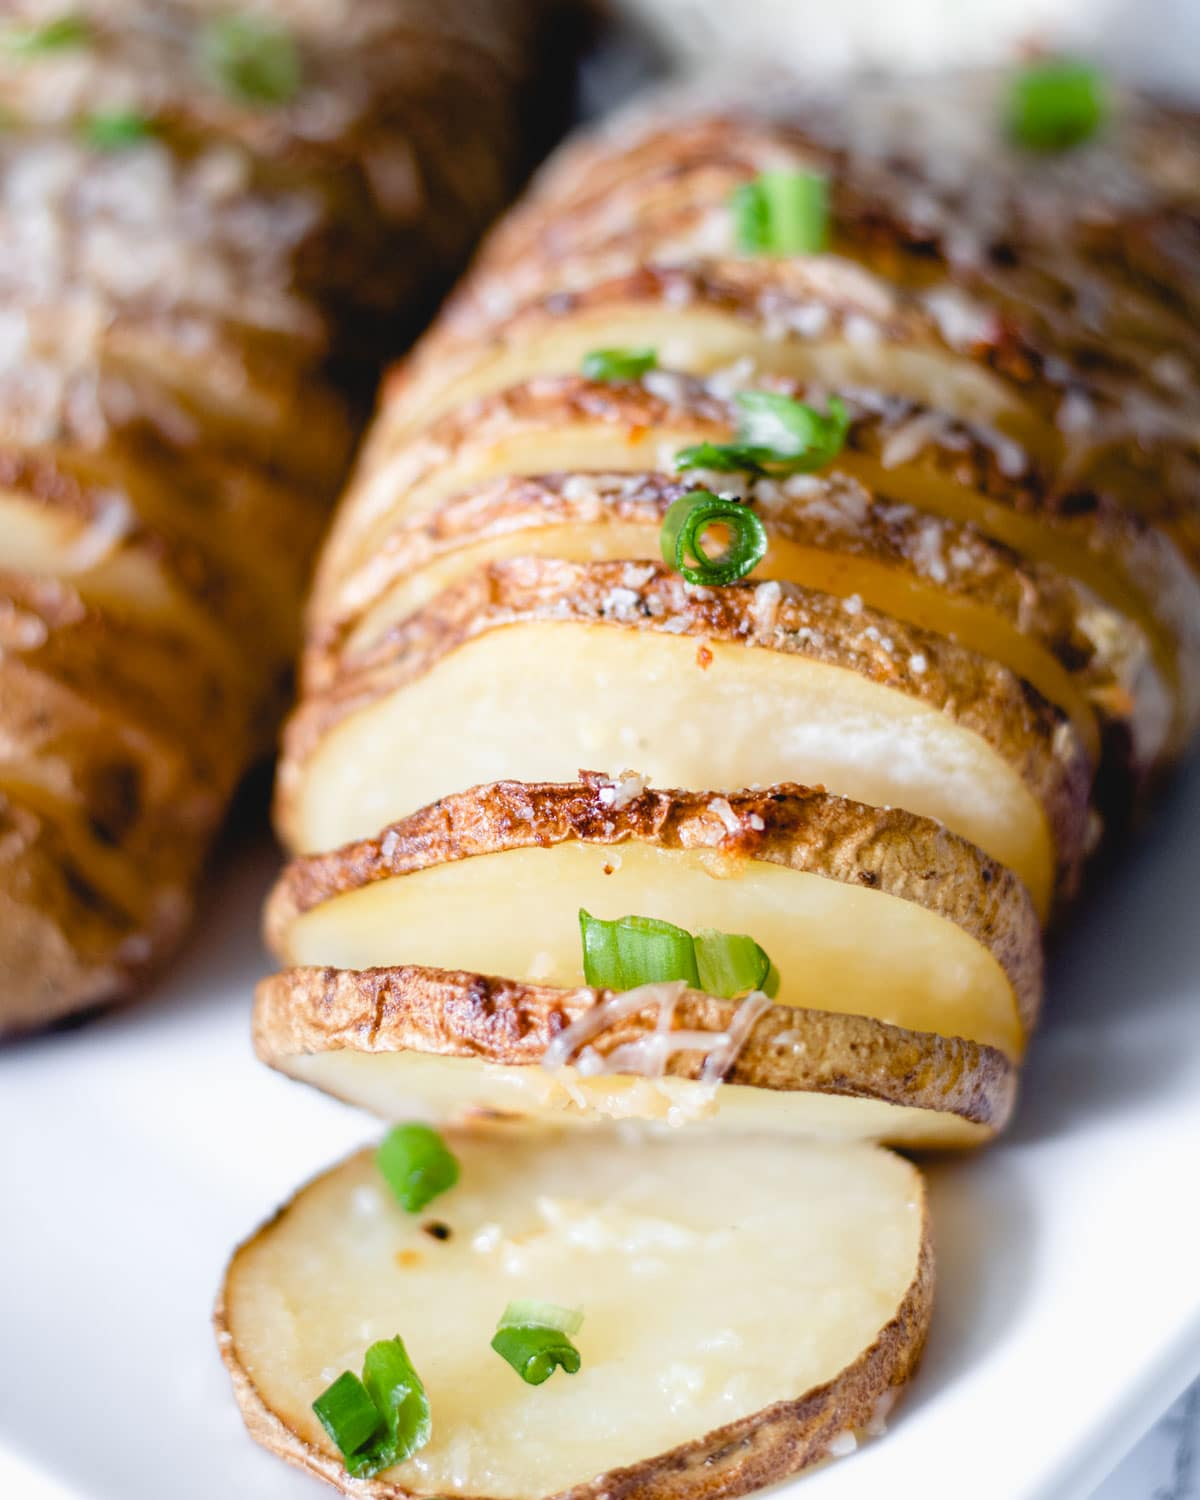 Hasselback potatoes with garlic, Parmesan, and green onions.